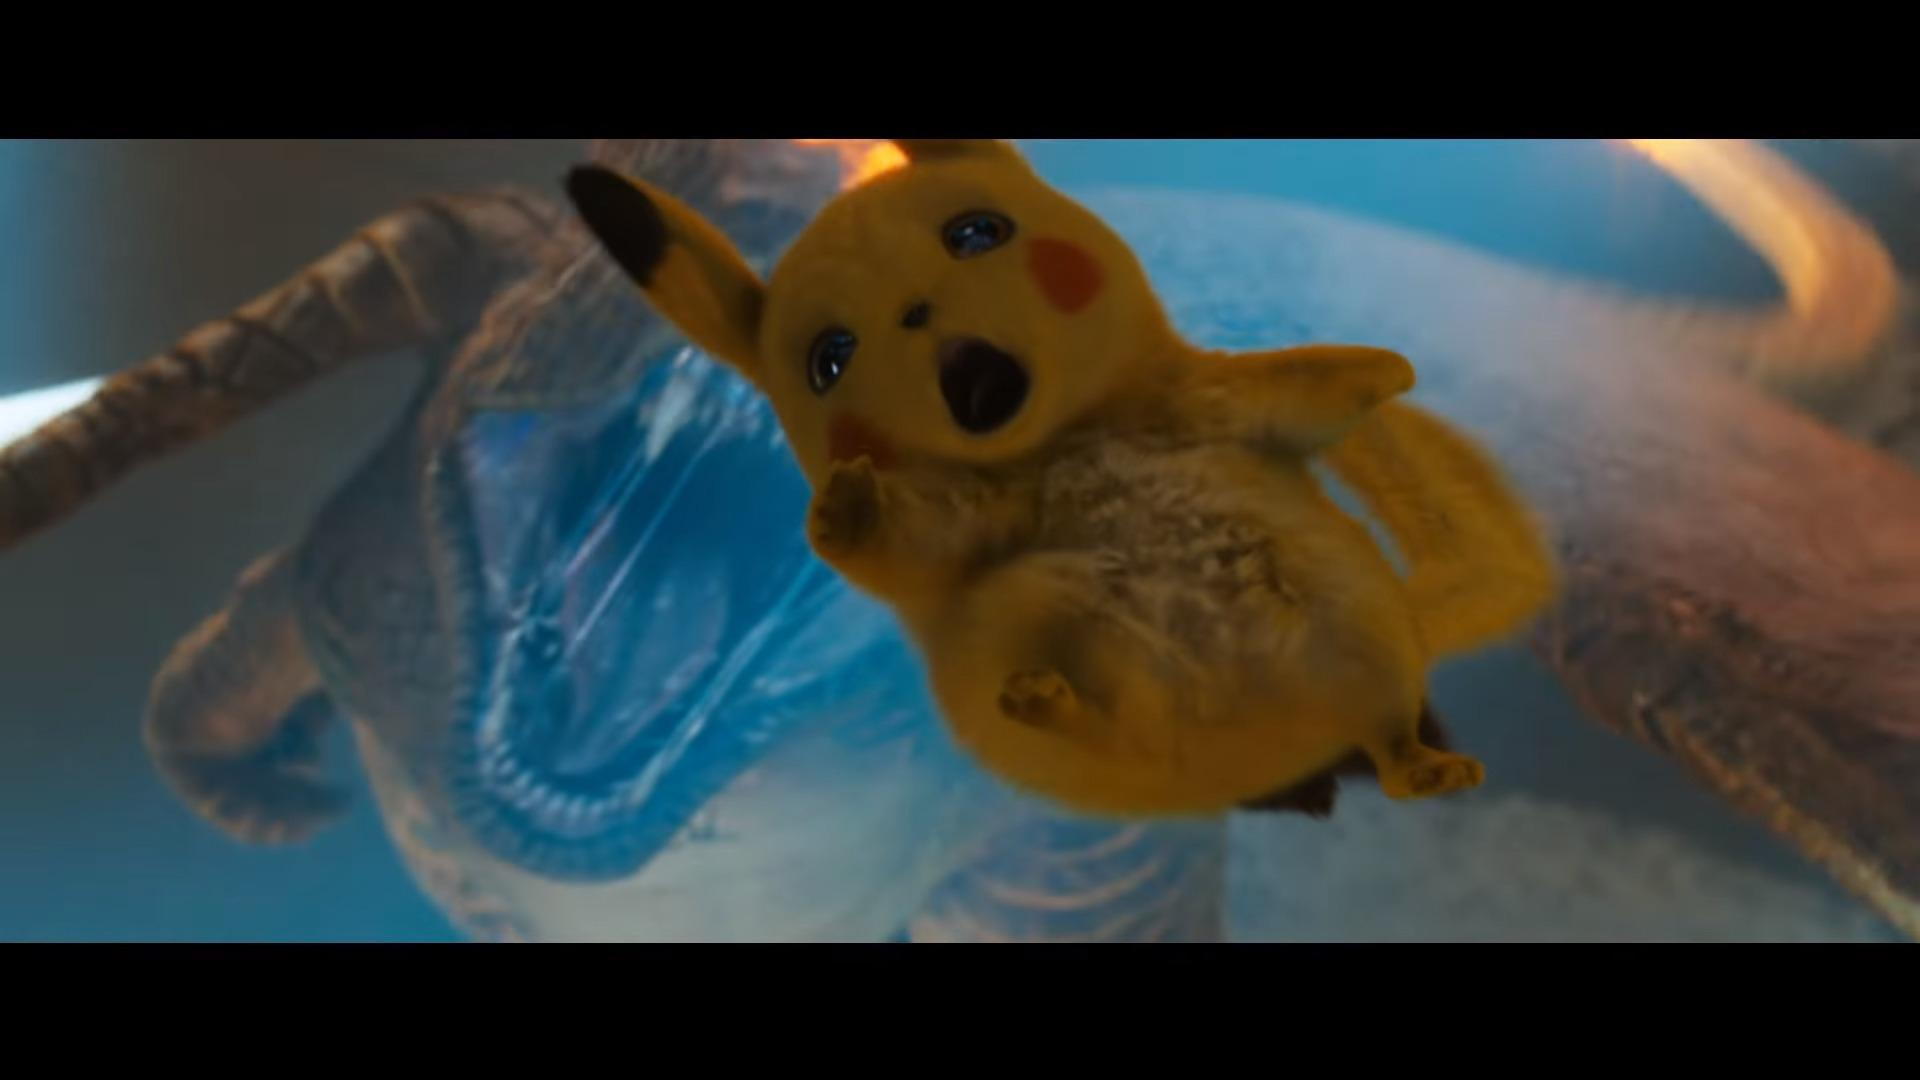 POKÉMON Detective Pikachu Gets Its First Official Trailer